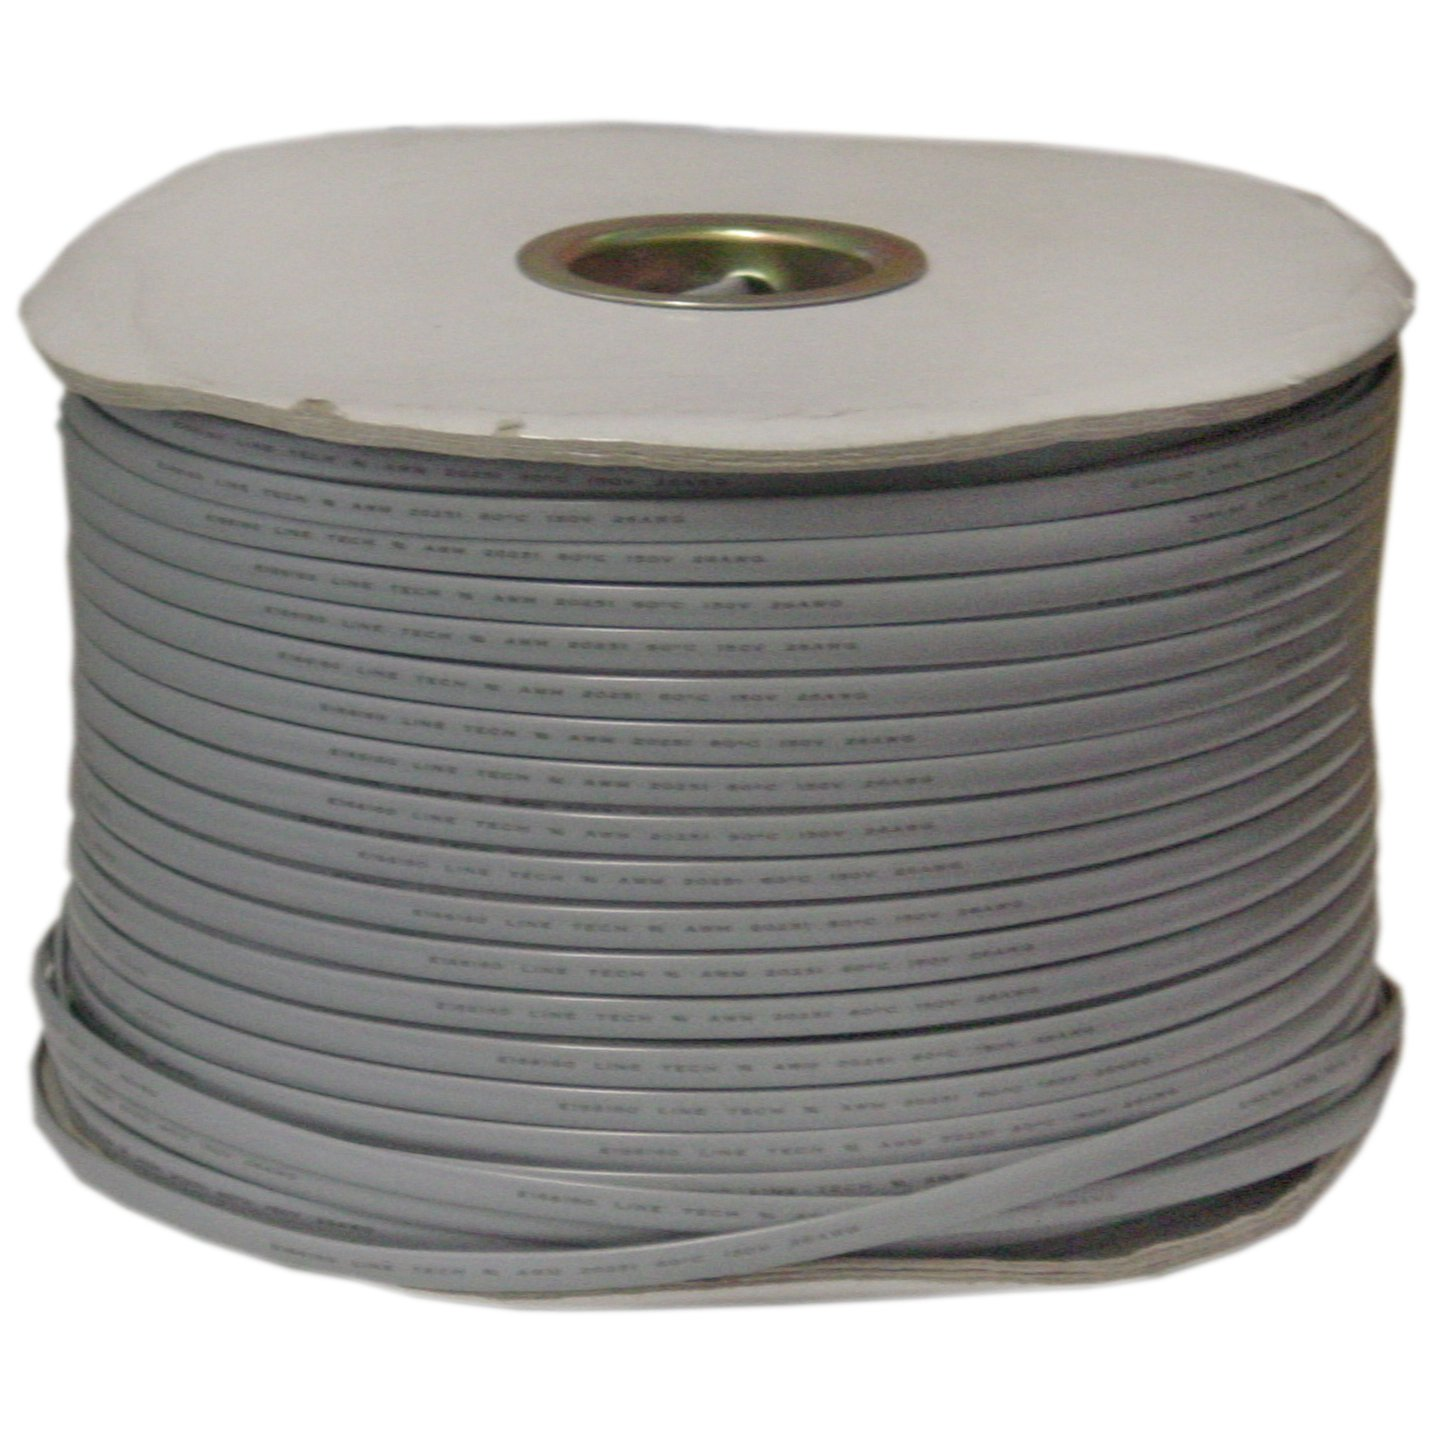 CableWholesale's Bulk Phone Cord, Silver Satin, 26/6 (26 AWG 6 Conductor), Spool, 1000 foot